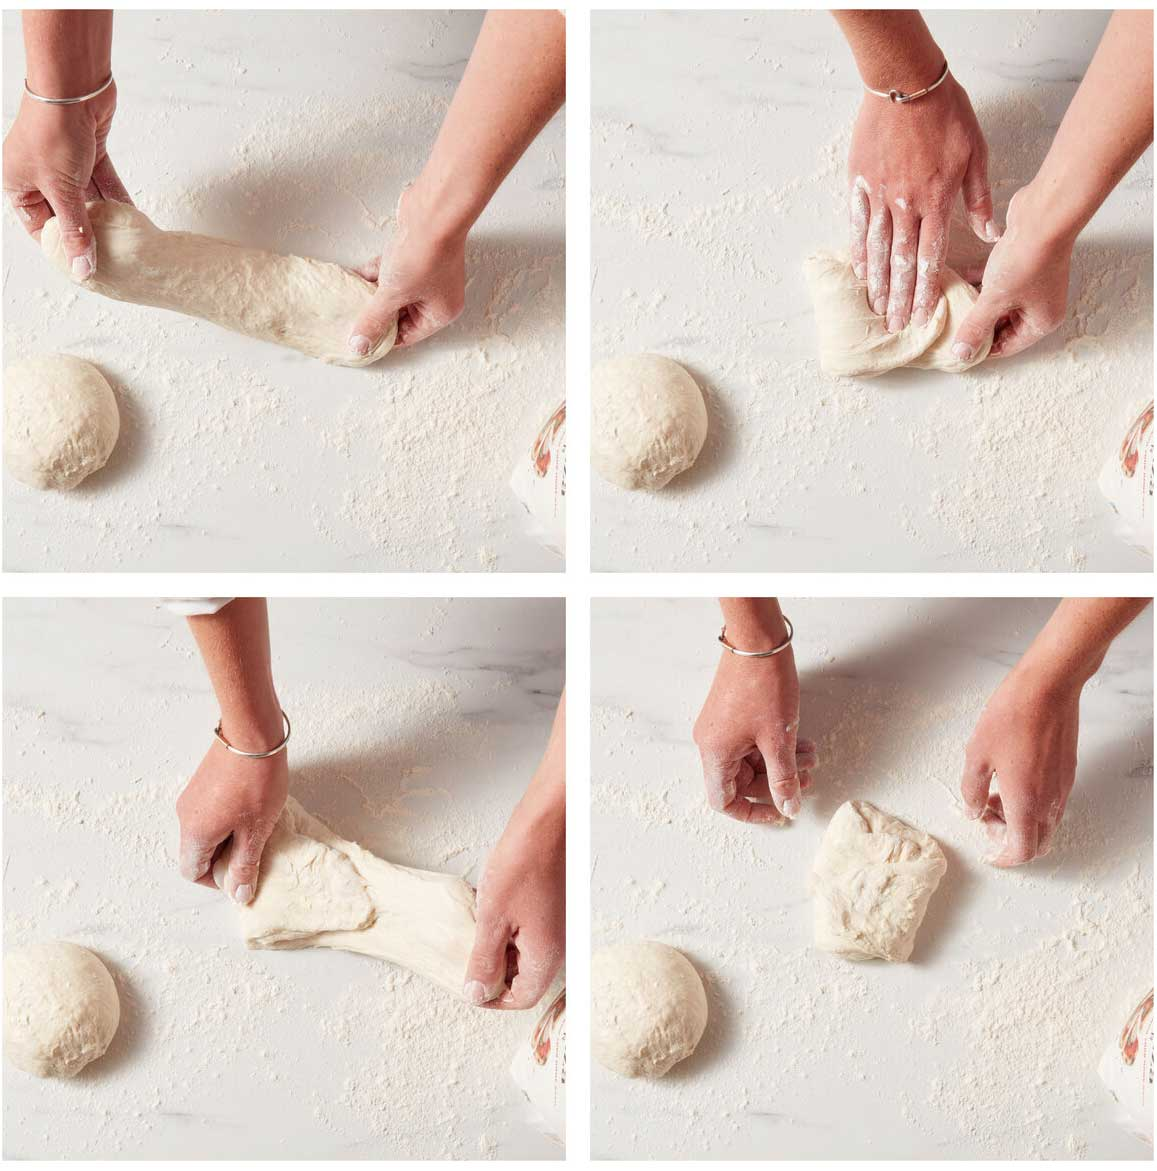 Four photos showing the dough being stretched and folded